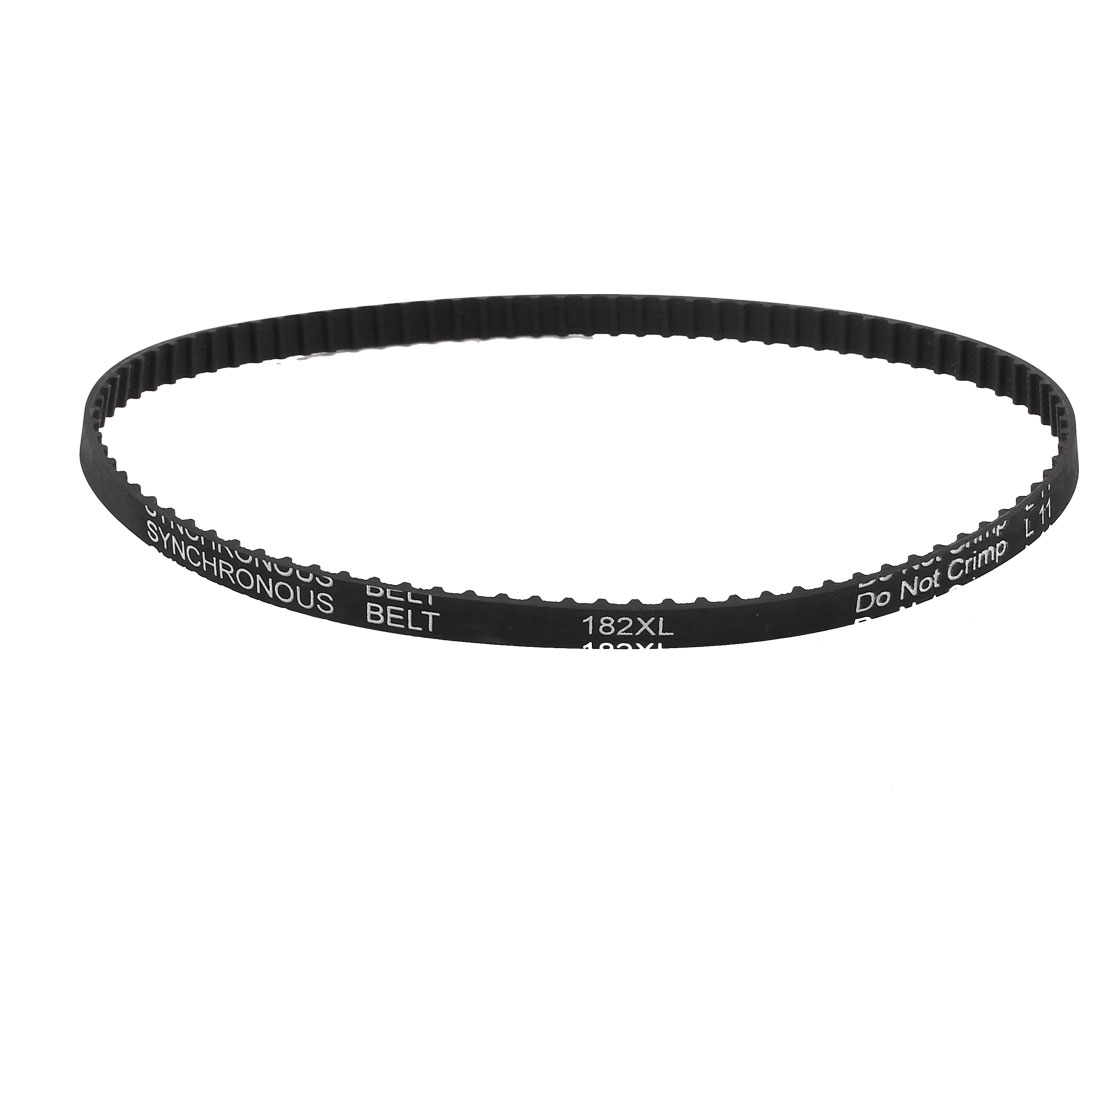 182XL 031 Engine Rubber Timing Belt 91 Teeth 5.08mm Pitch 7.9mm Width 462.28mm